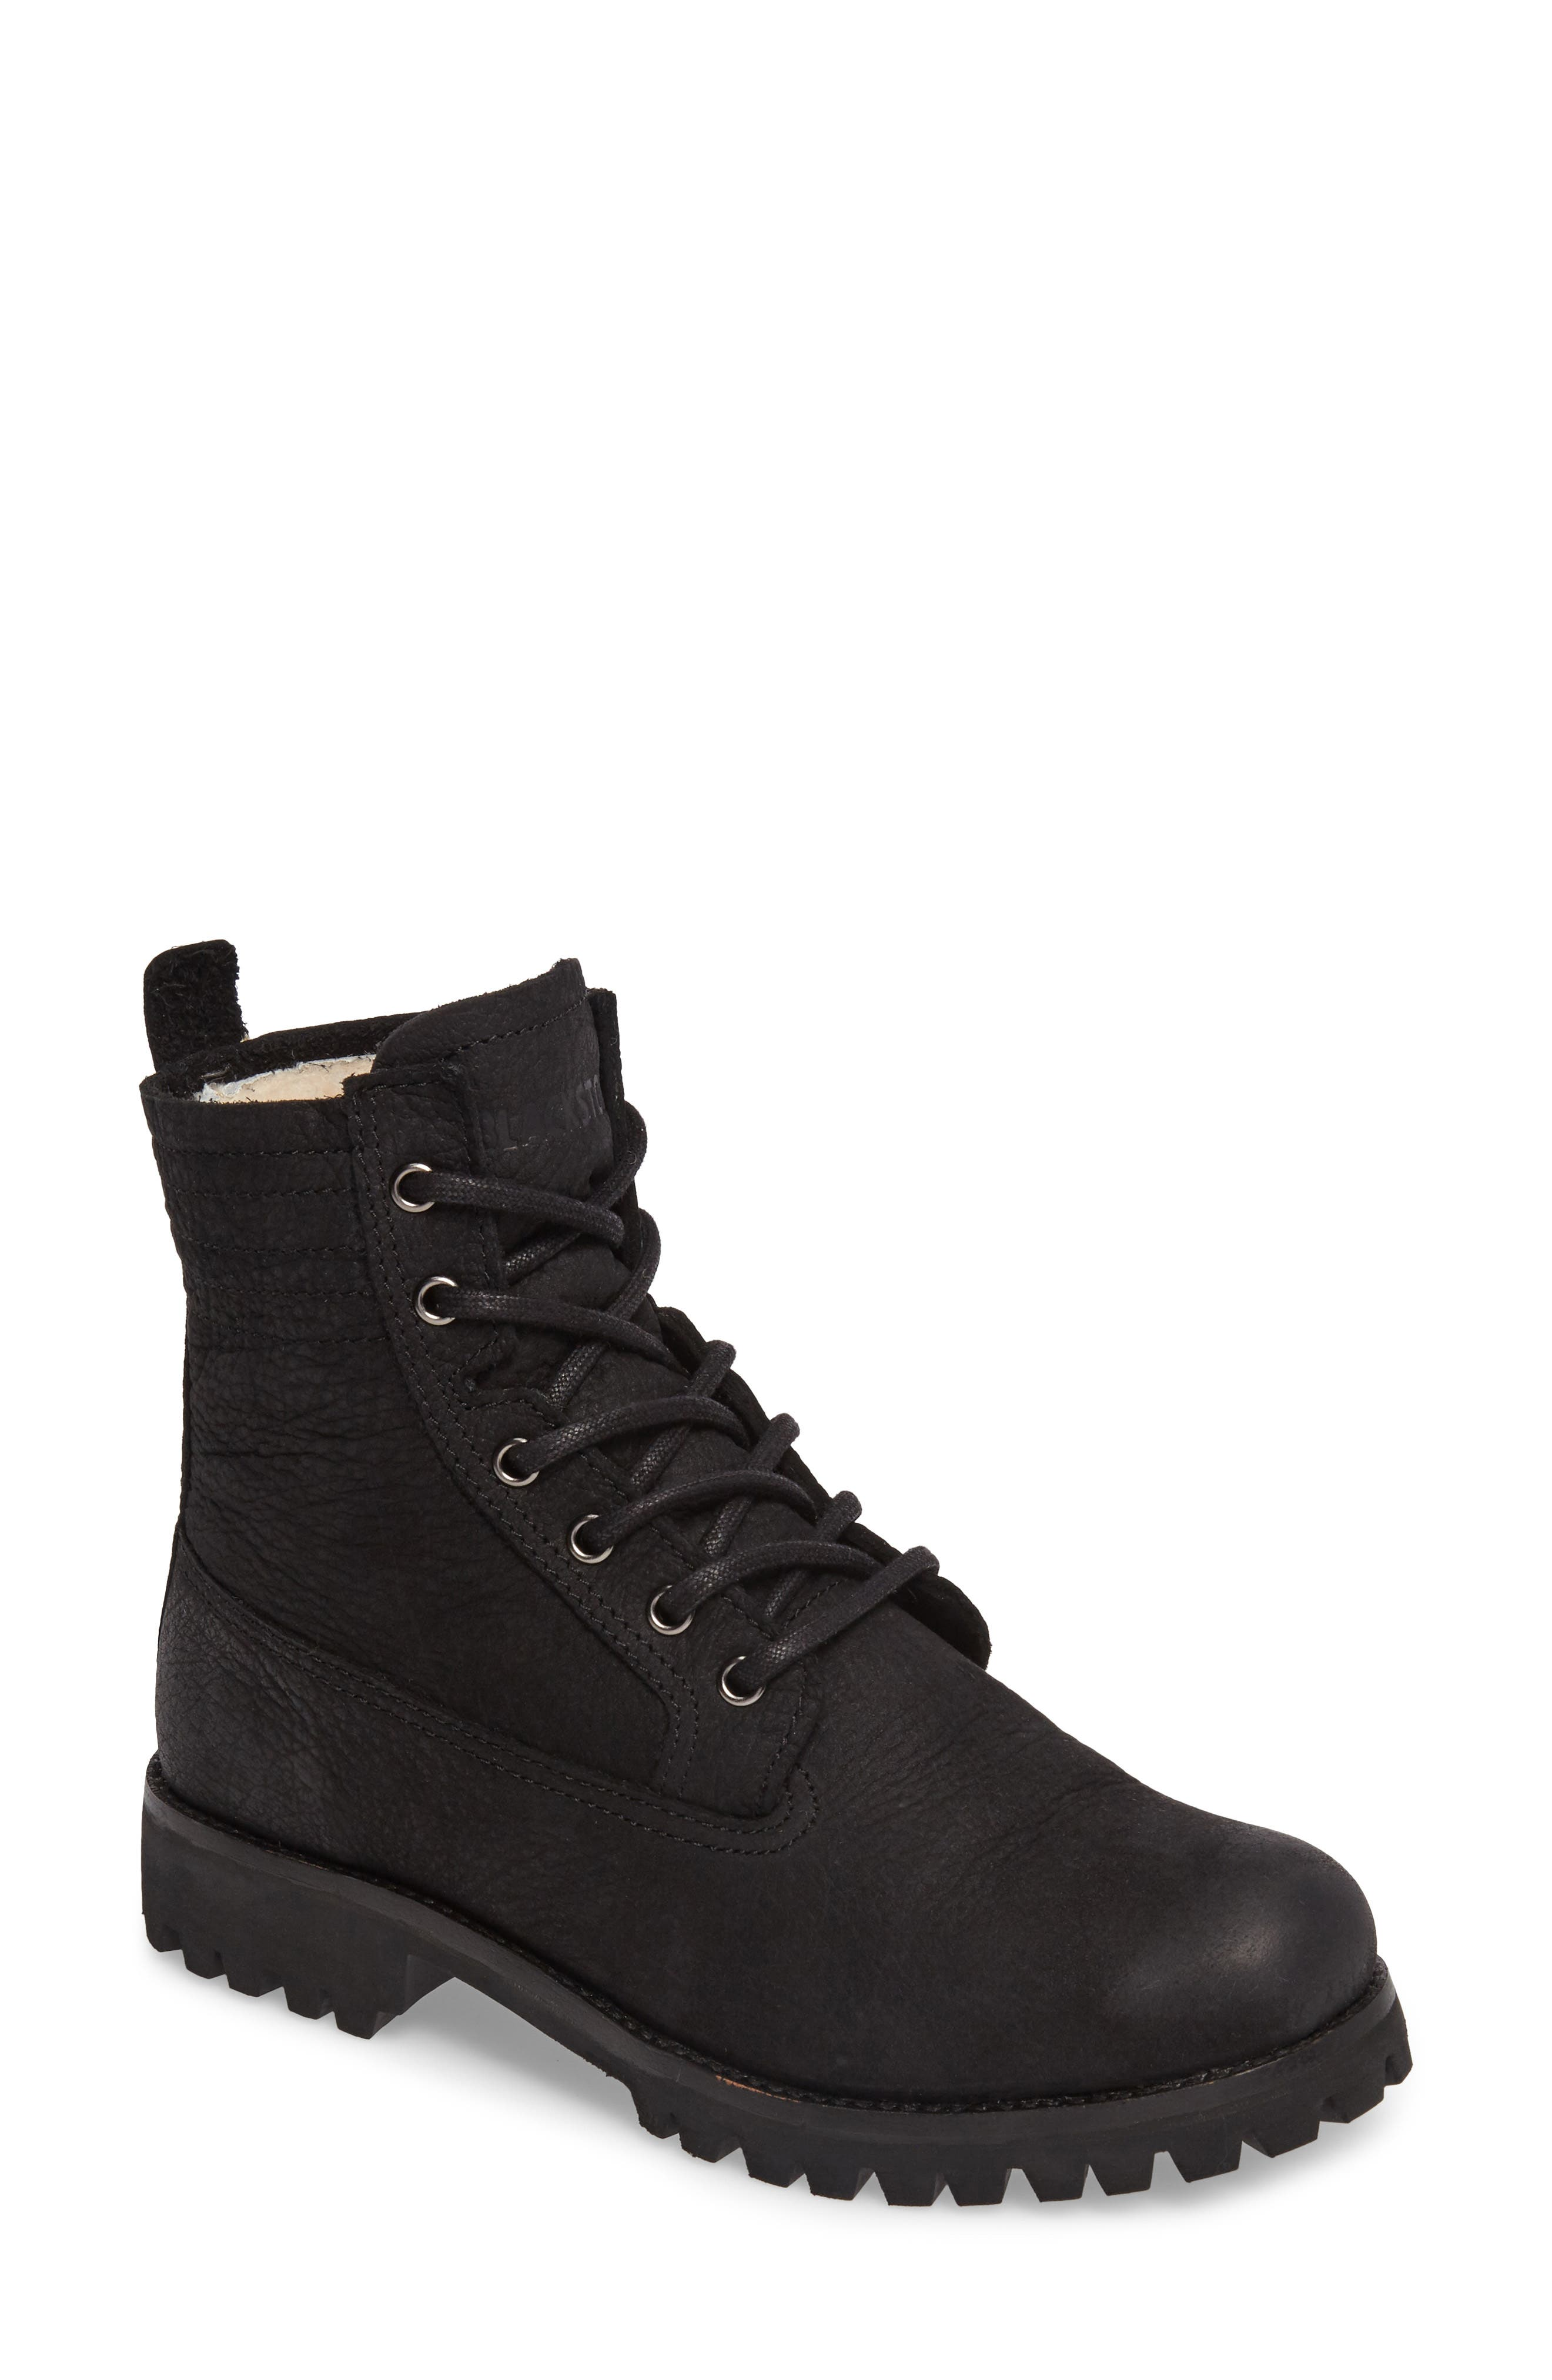 Blackstone OL22 Lace-Up Boot with Genuine Shearling Lining (Women)